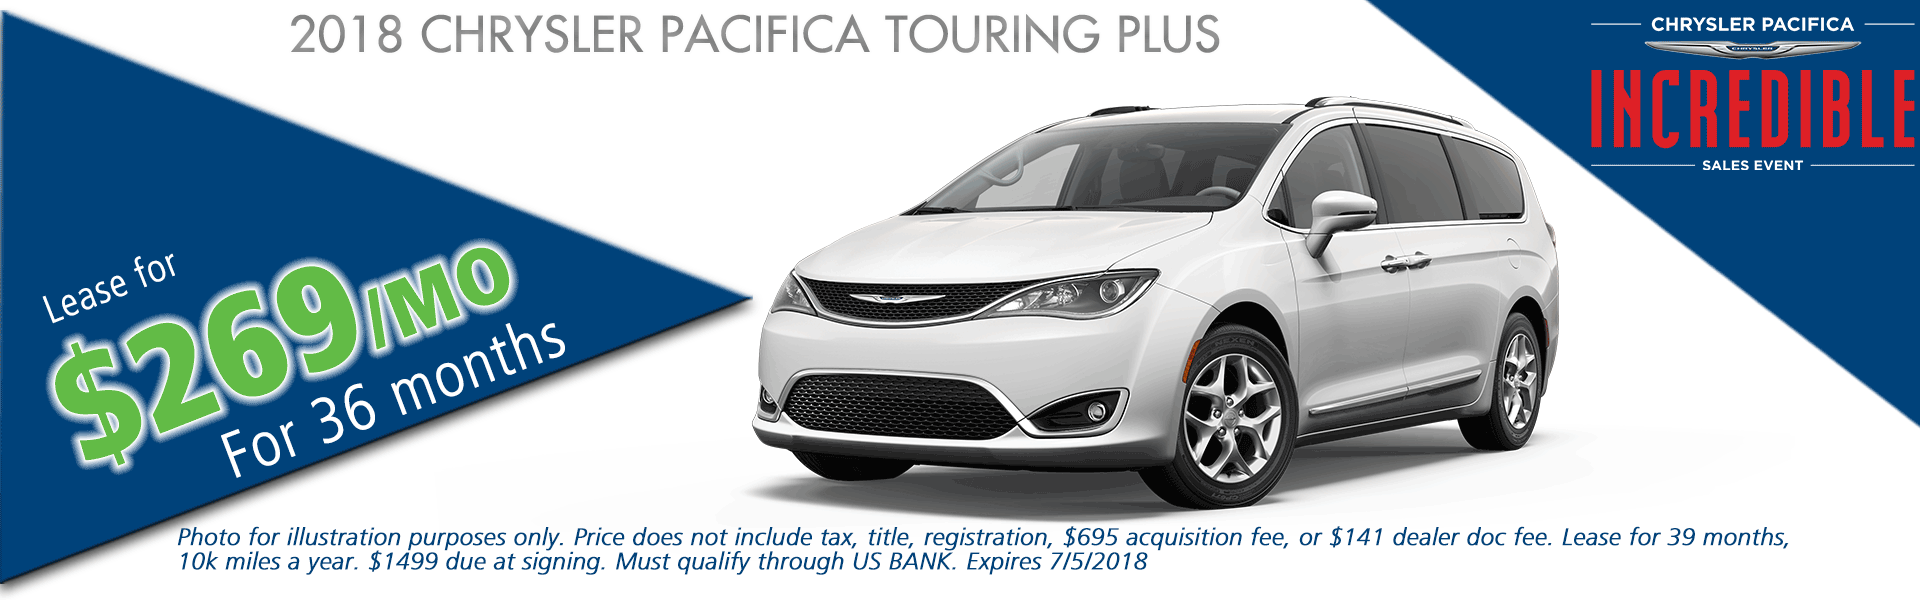 NEW 2018 CHRYSLER PACIFICA TOURING PLUS carright chrysler jeep dodge ram moon township pennsylvania pittsburgh